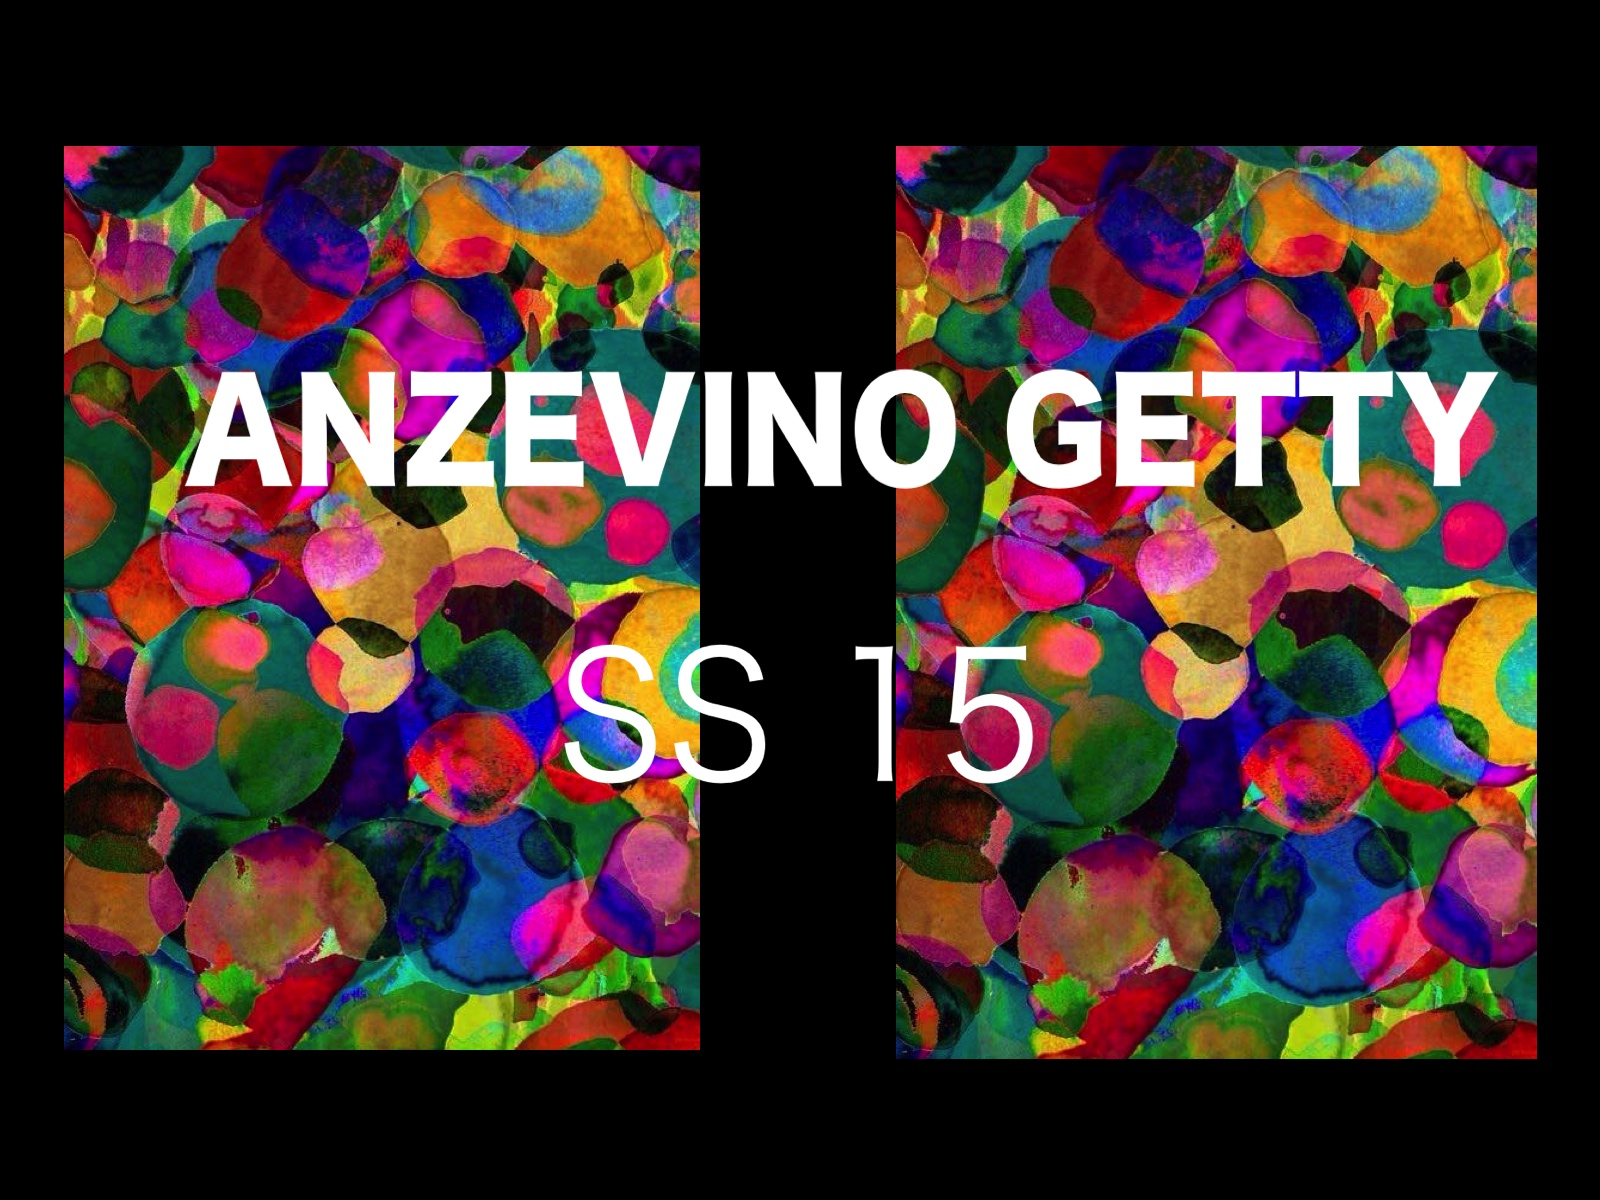 ANZEVINO GETTY